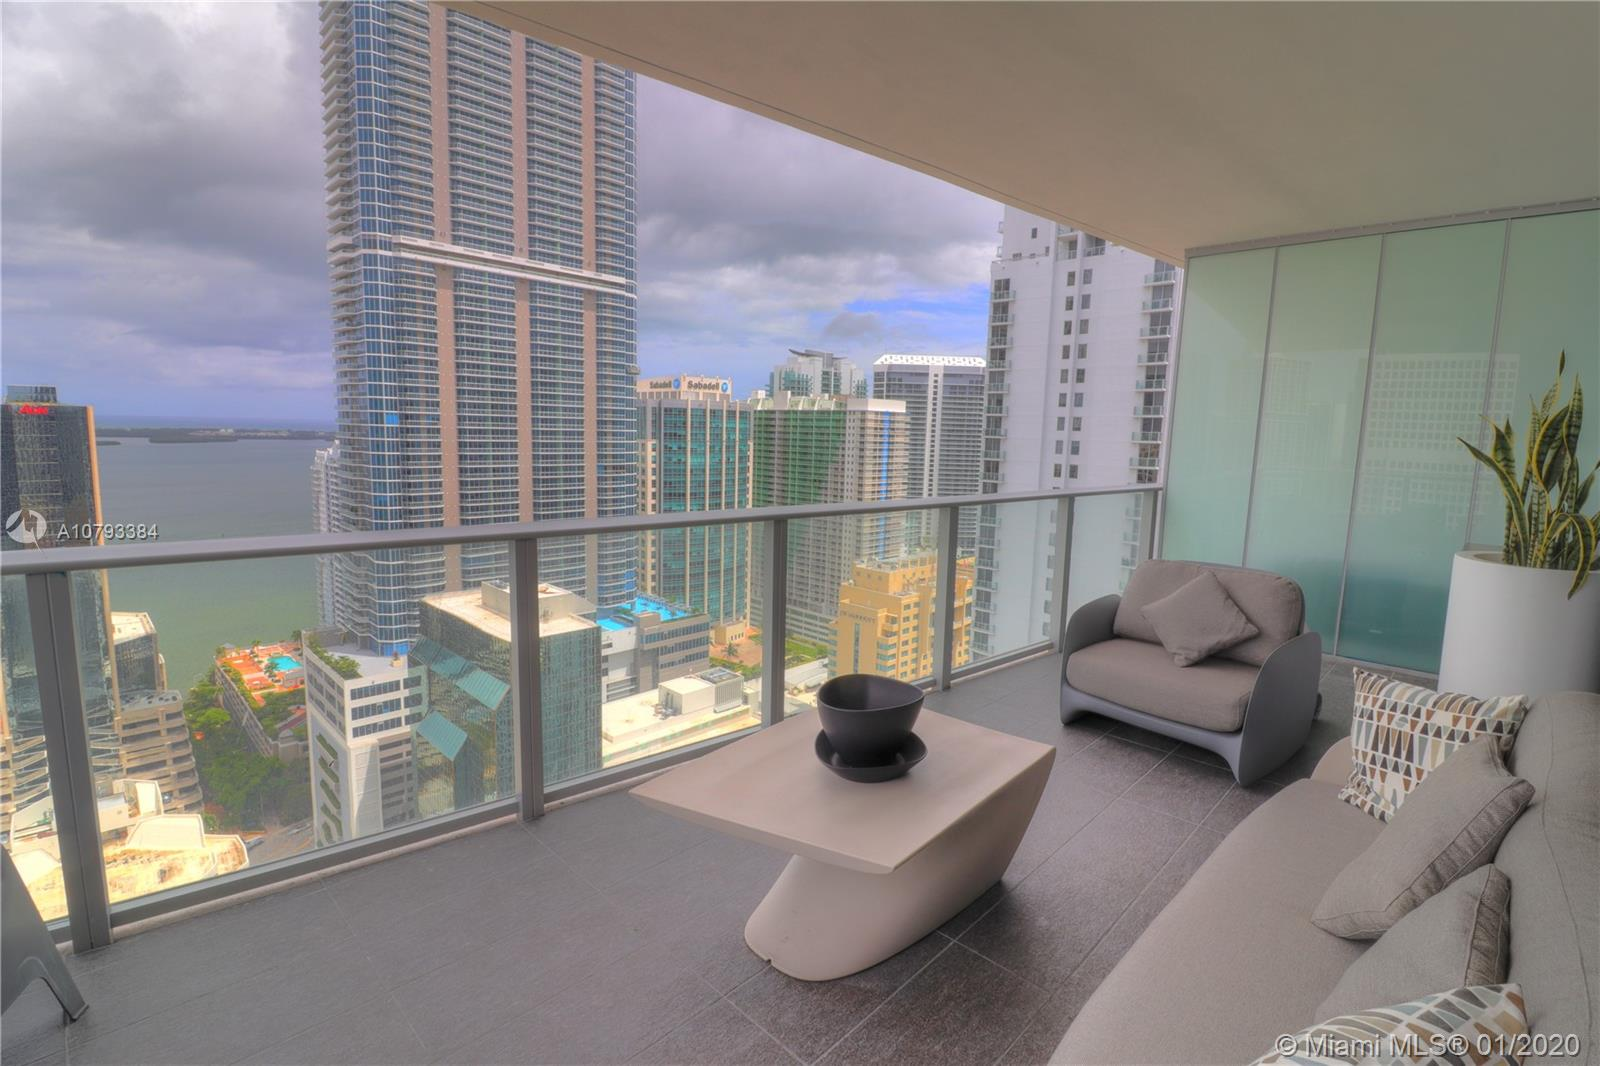 Incredible corner unit at 1010 Brickell Condo, best line in the building overlooking the bay. Private elevator with 3 beds, 3 baths, + den 9-foot ceiling heights, balcony with barbecue/ summer kitchen. Marble floors , Top of the line Smeg appliances! 2 Parking Space included and storage unit. Great amenities for families; outdoor movie theatre, restaurant & swimming pool at 50th floor roof top; spa with jacuzzi, message & treatments rooms, sauna & steam room; basketball, mini soccer & racquetball courts, kids indoor playground, indoor heated swimming pool, fitness center, party room, arcade room with bowling virtual golf, and more!.